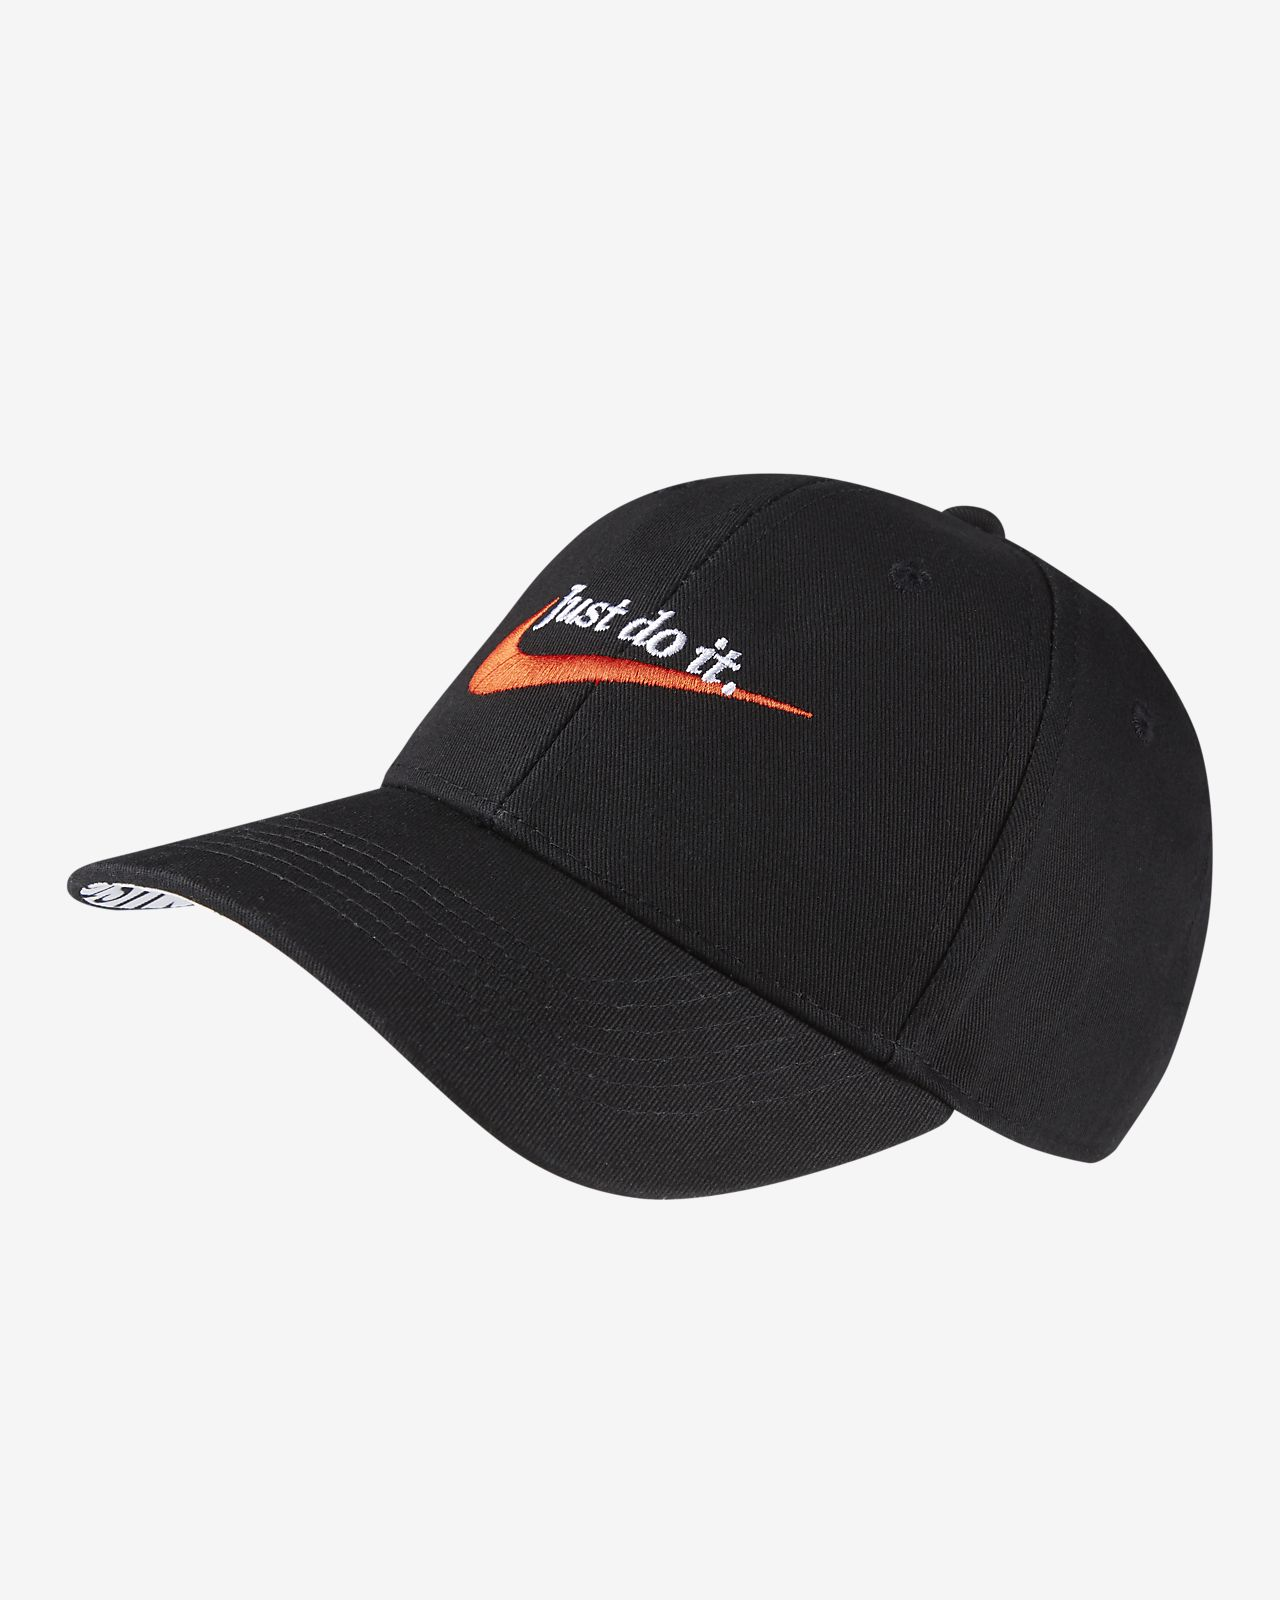 Nike Little Kids' JDI Hat